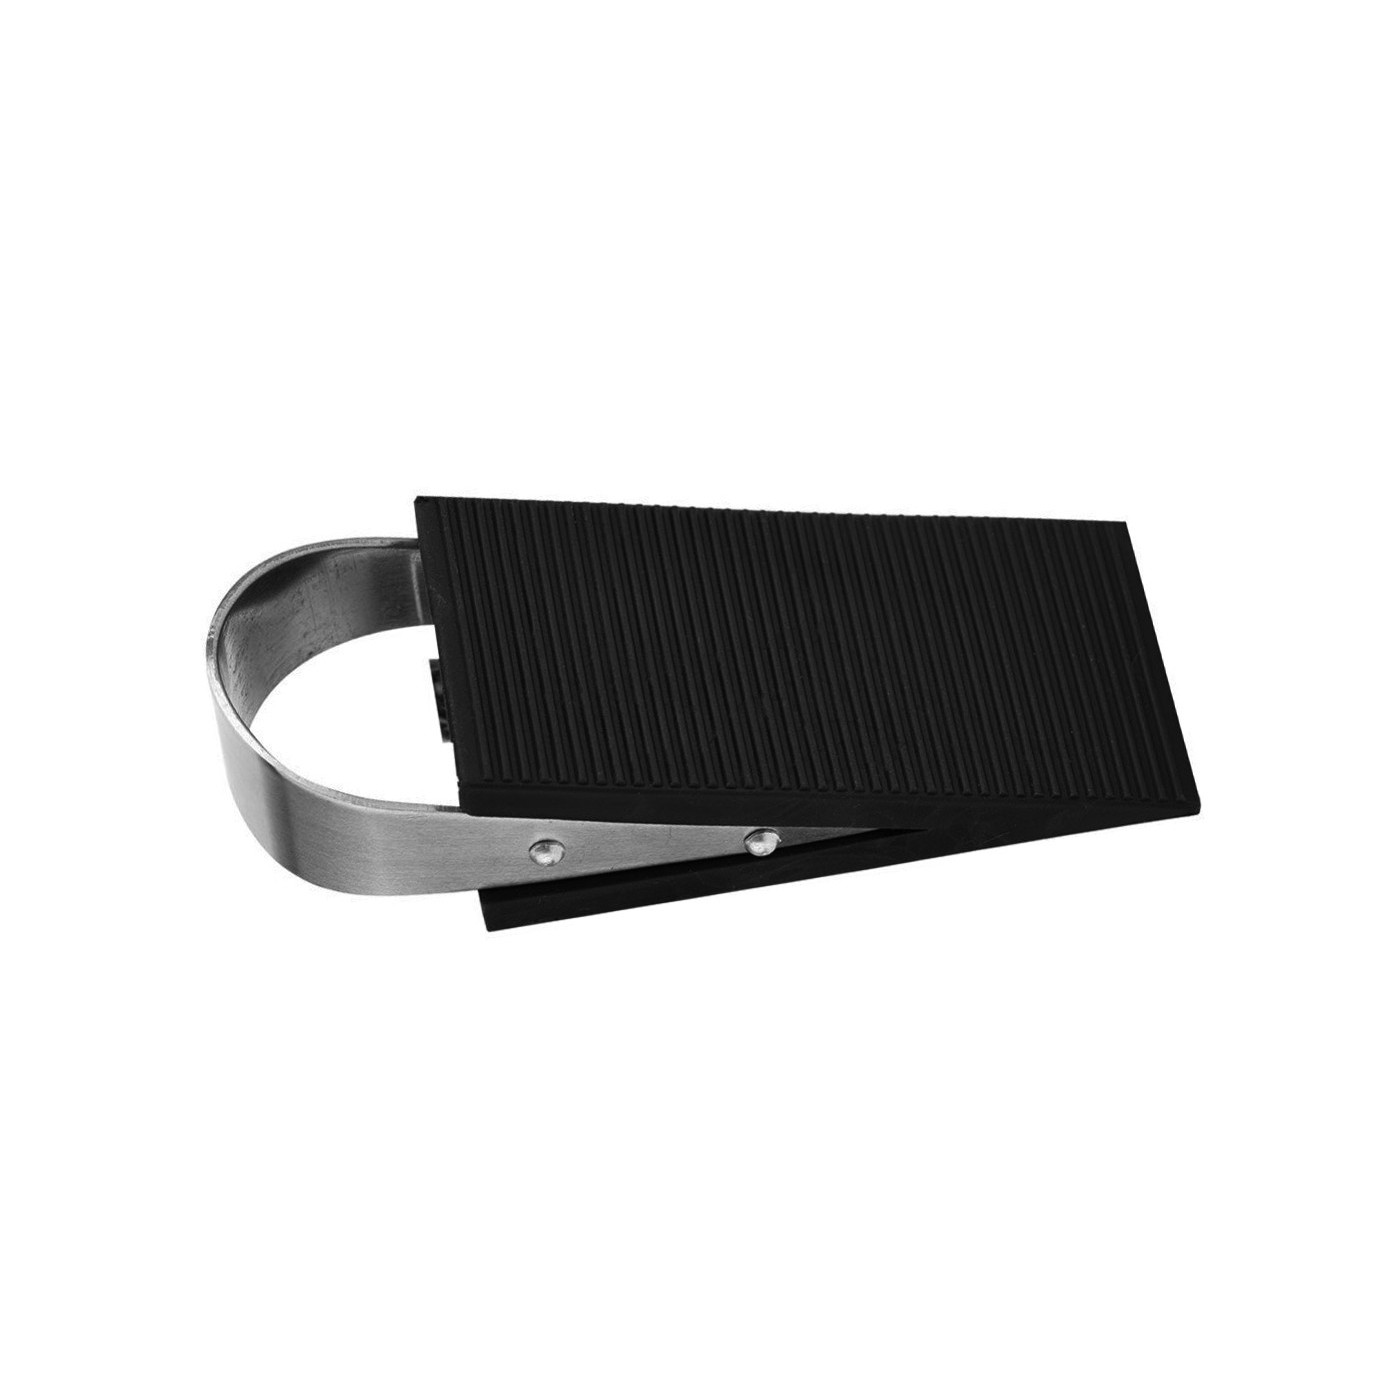 Set of 10 door stoppers (stainless steel and rubber)